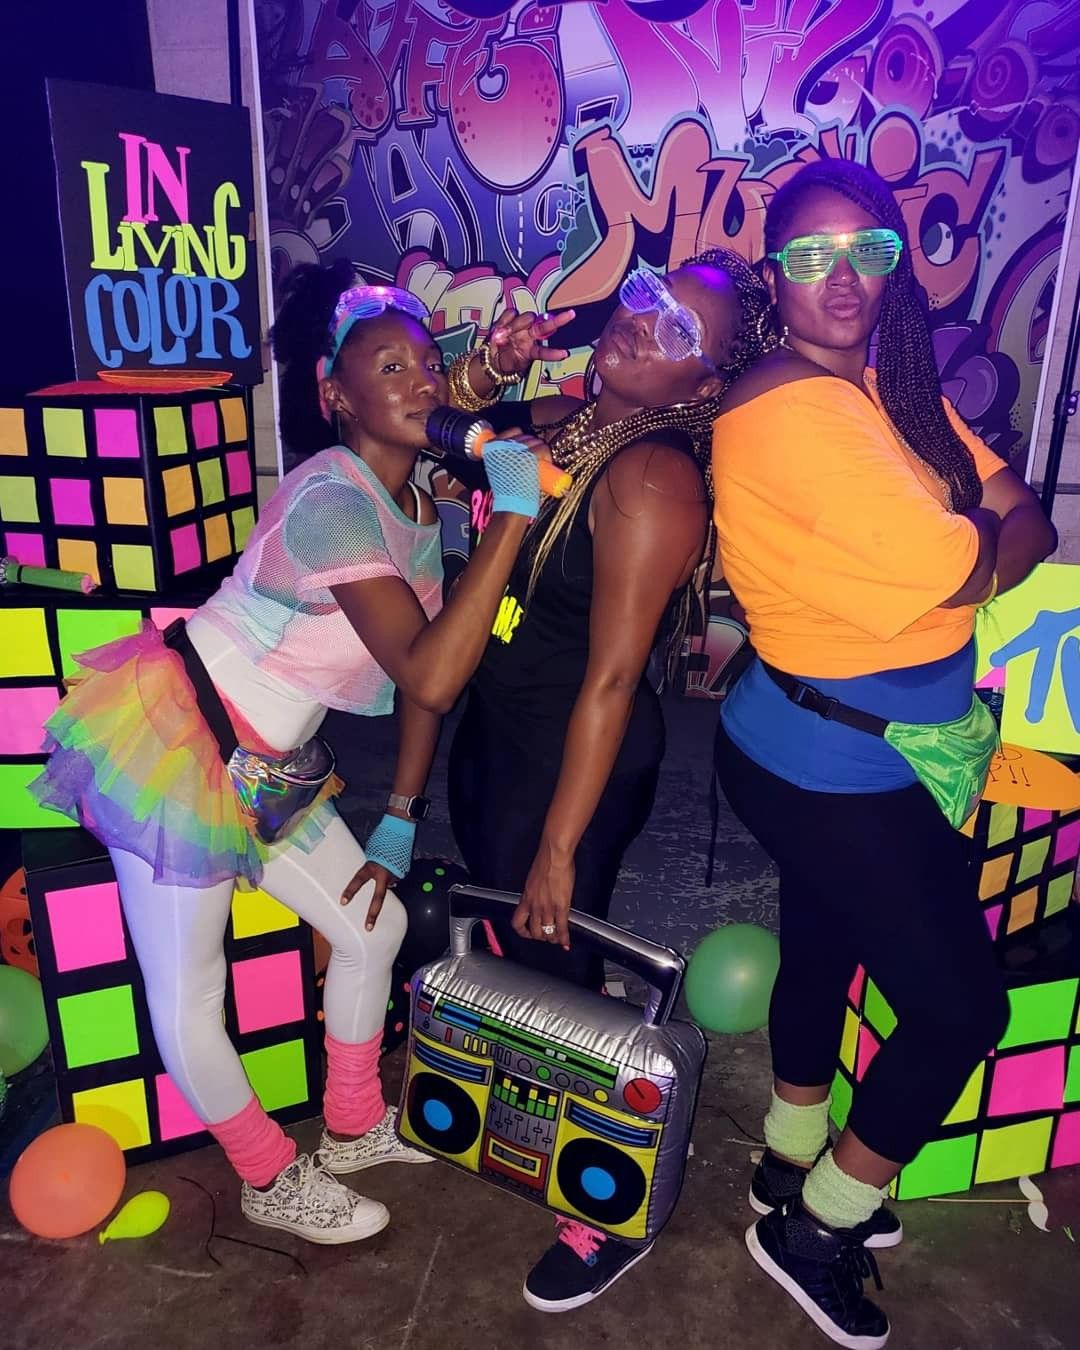 80 S 90 S Glow Party Backdrop Crimsonkissesevents Glow Party 90s Theme Party 90s Party Decorations [ 1350 x 1080 Pixel ]